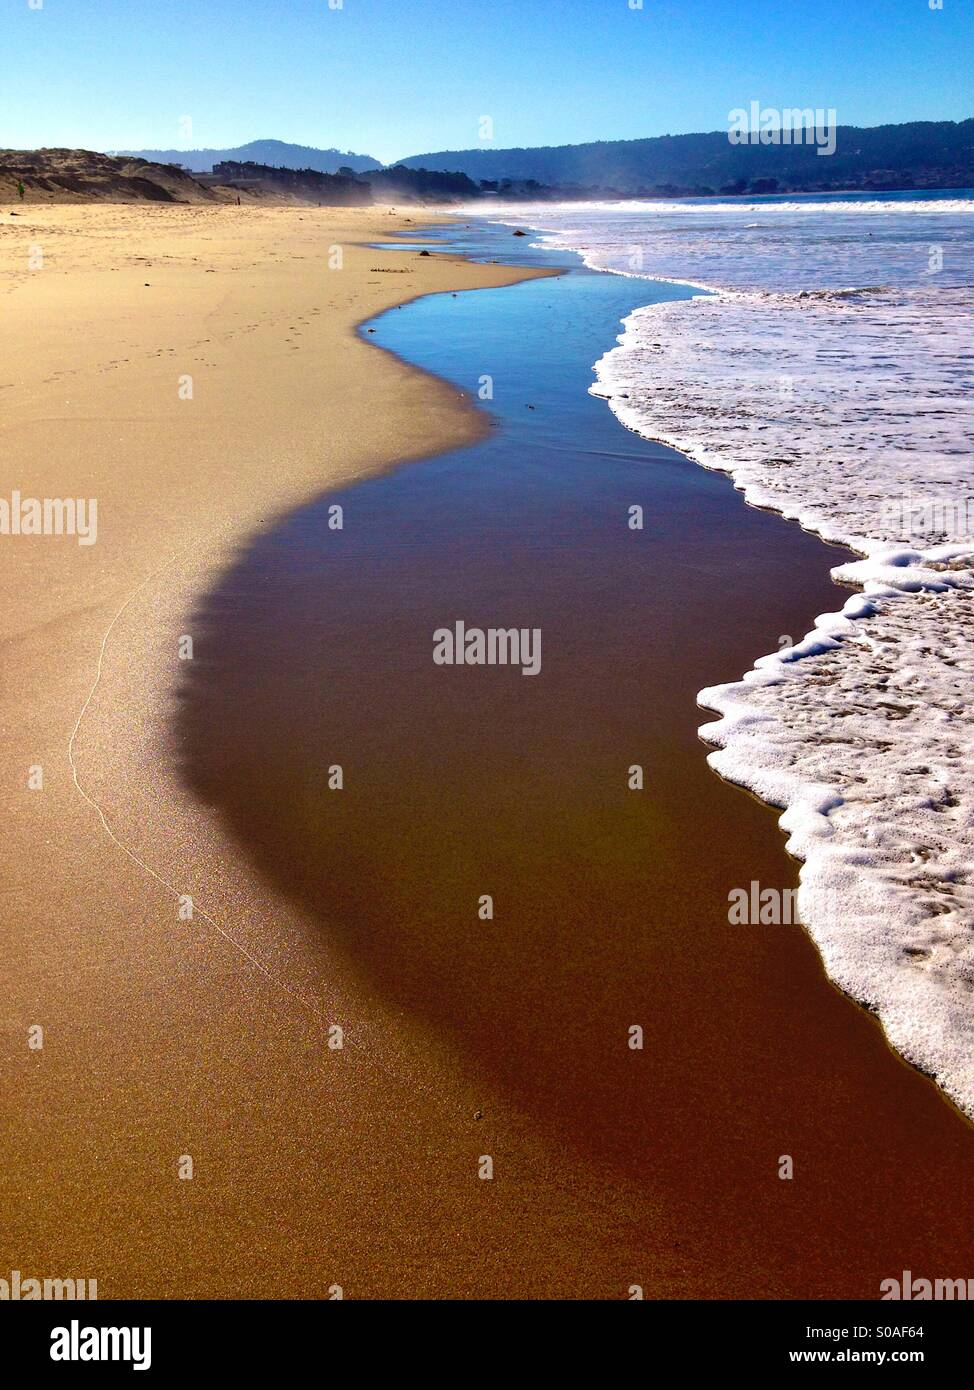 Gentle surf on sandy beach in California - Stock Image